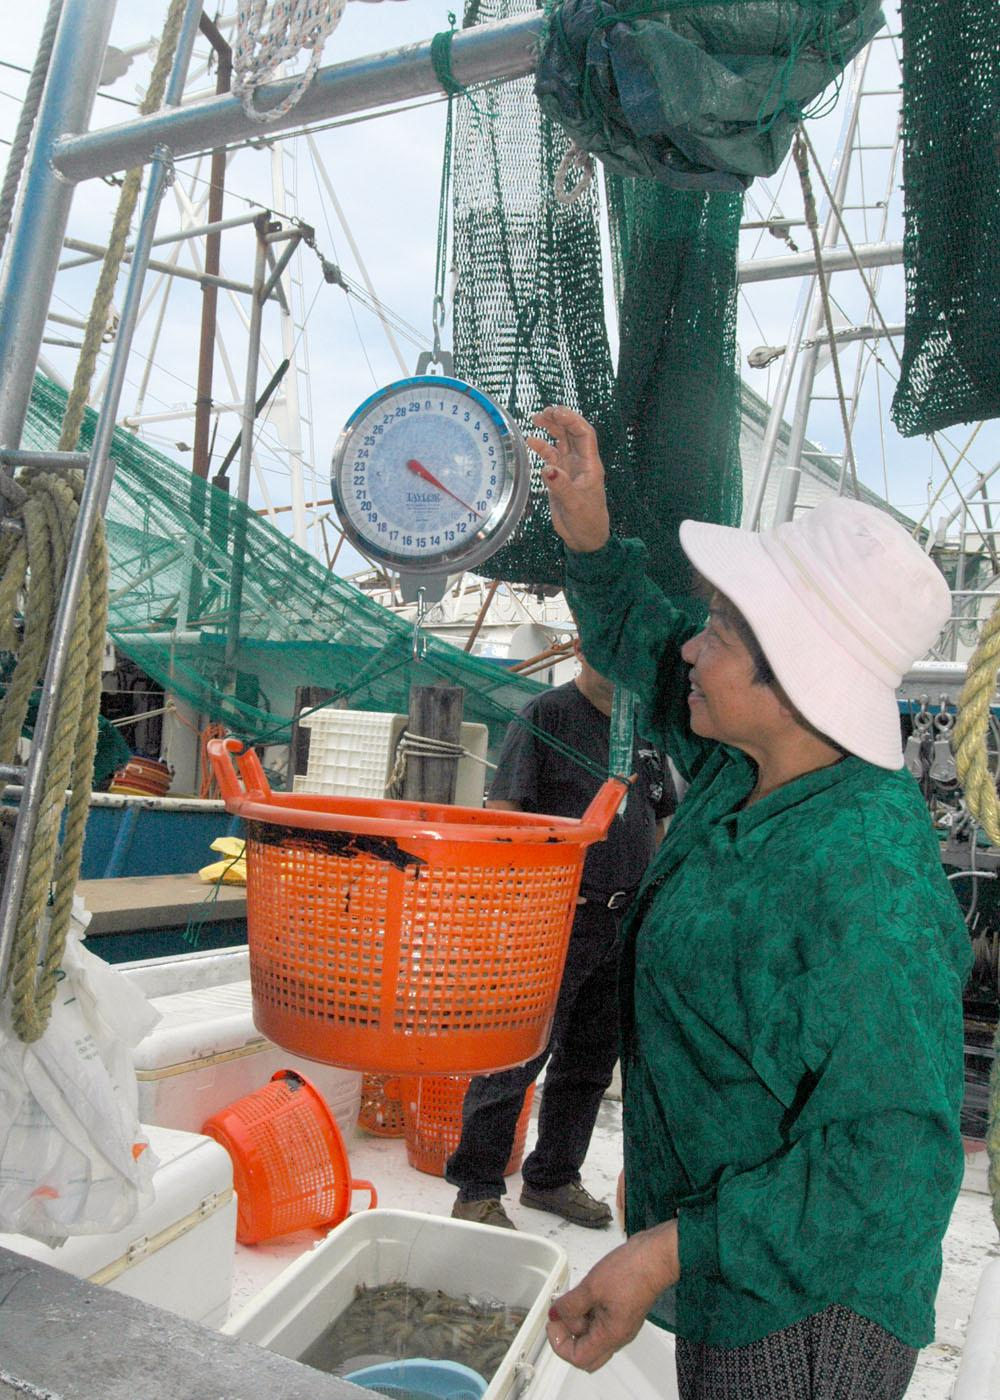 Hoat Bui Thi weighs fresh-caught shrimp for a customer aboard the Lucky Lady at the small craft harbor in Biloxi. (Photo by Bob Ratliff)